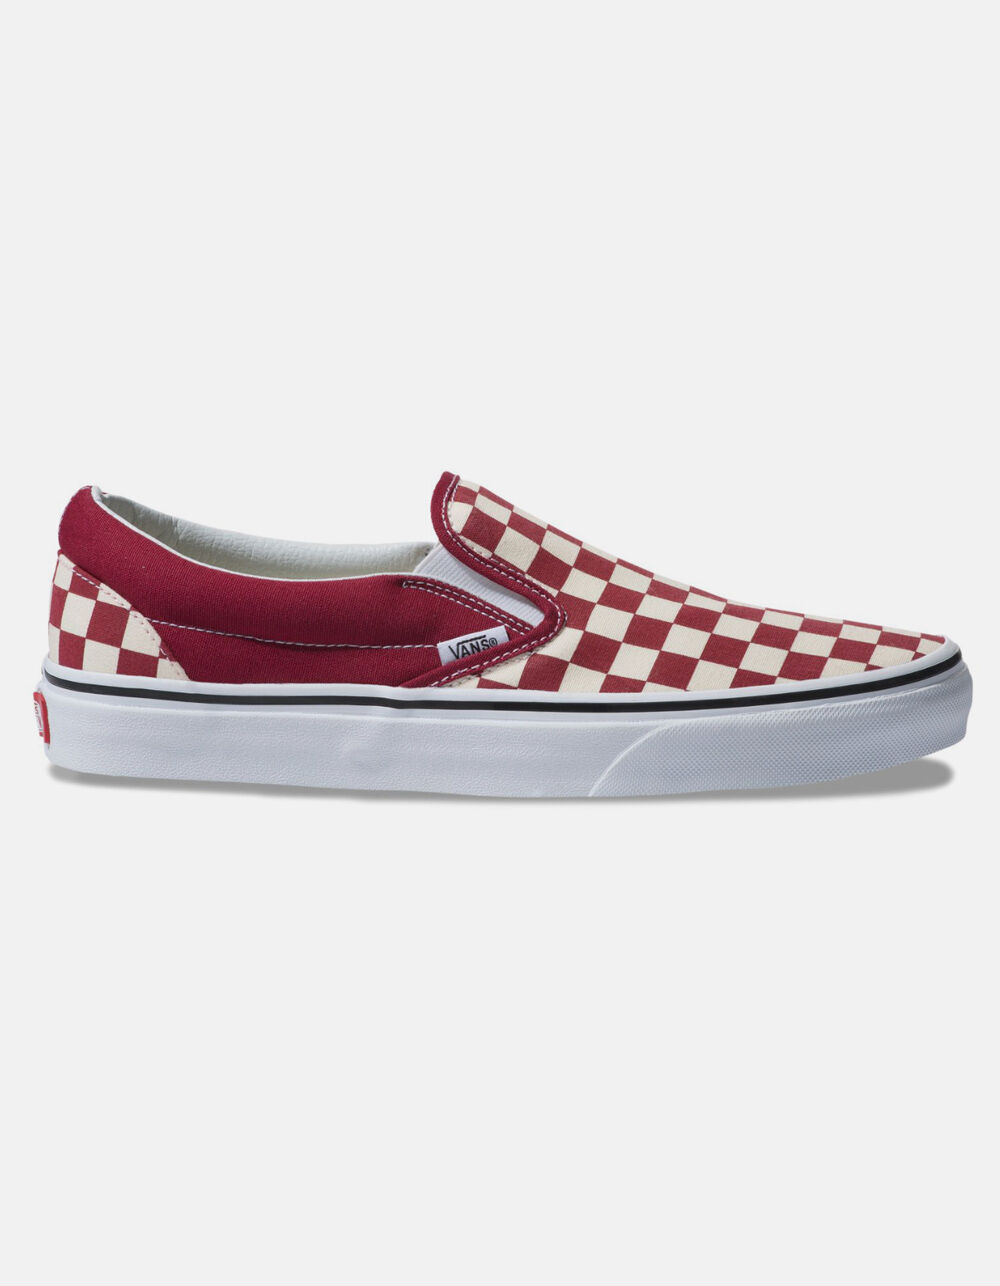 VANS CHECKERBOARD CLASSIC SLIP-ON RUMBA RED & TRUE WHITE SHOES